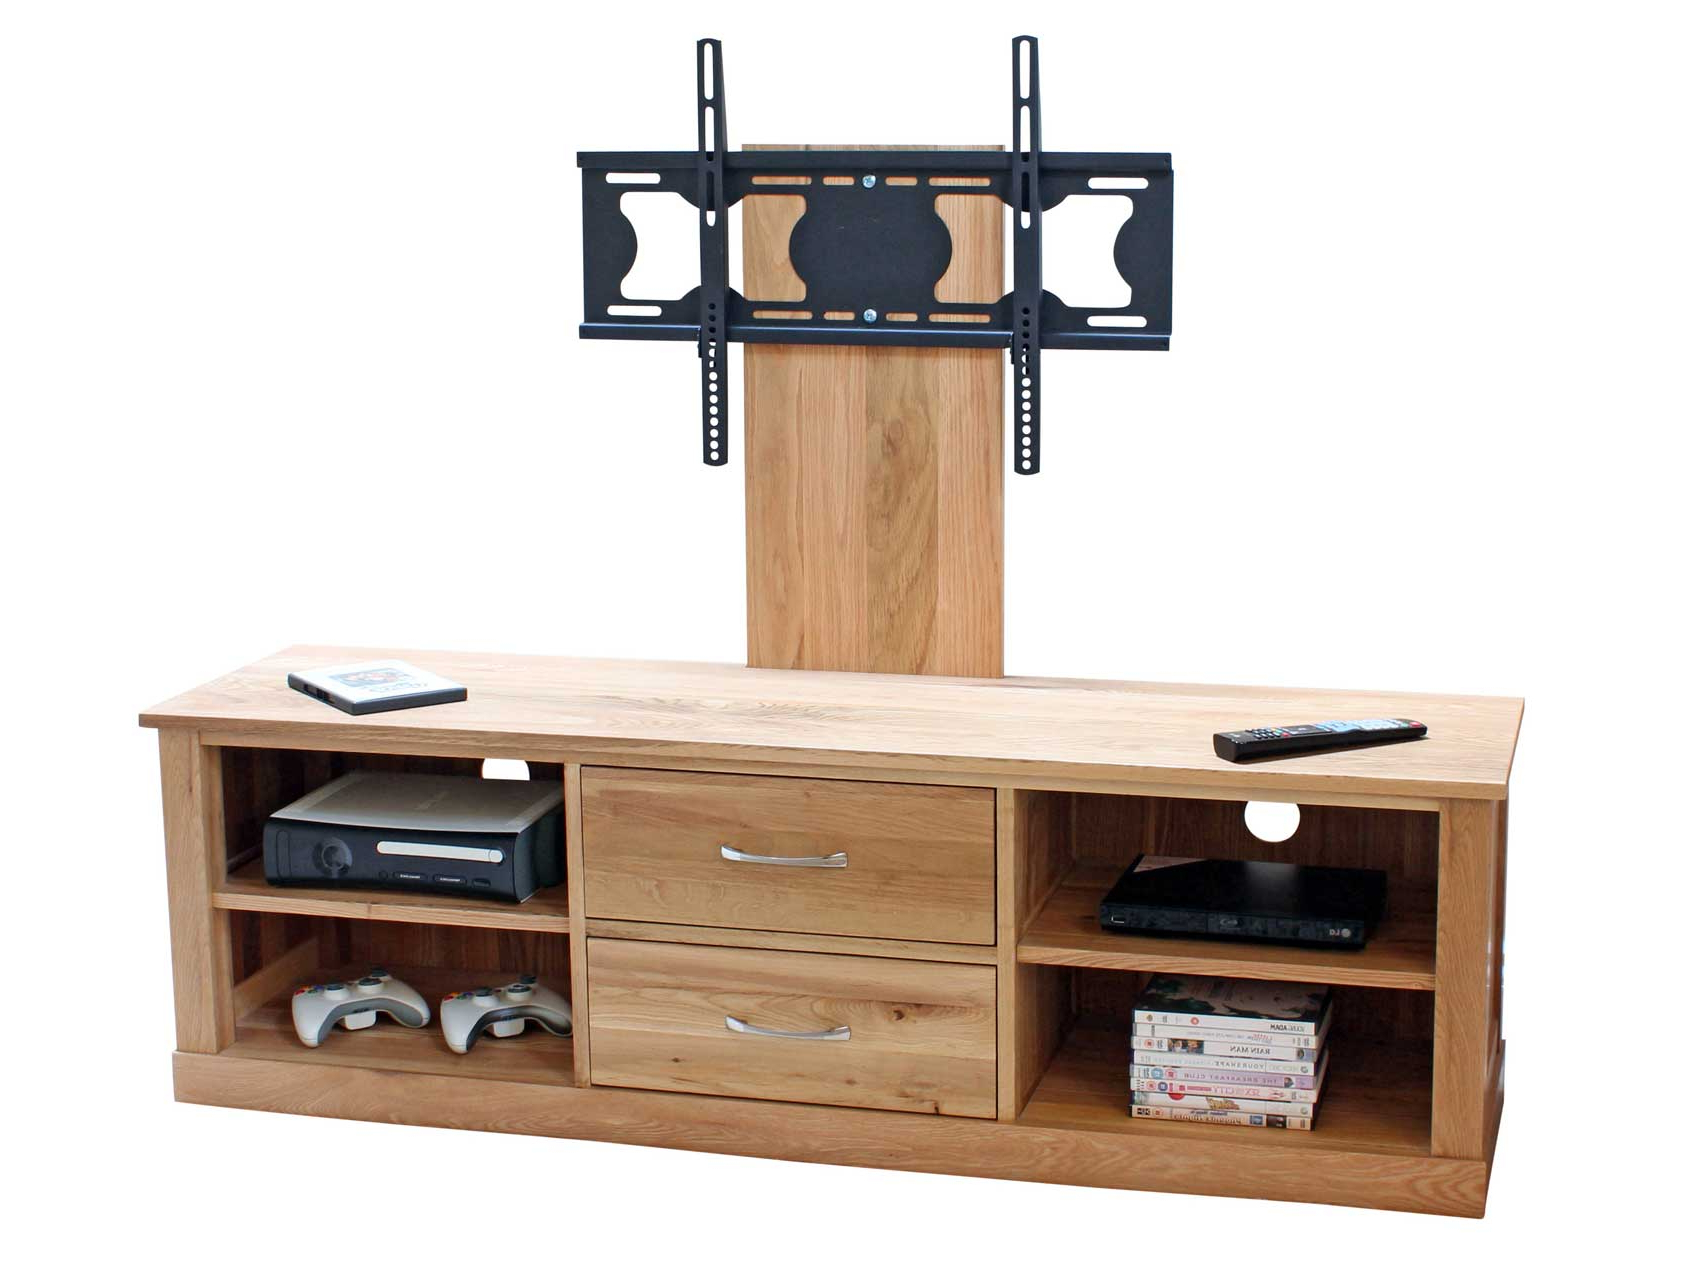 Oak Tv Stands For Flat Screens Intended For Newest Cool Flat Screen Tv Stands With Mount (Gallery 6 of 20)